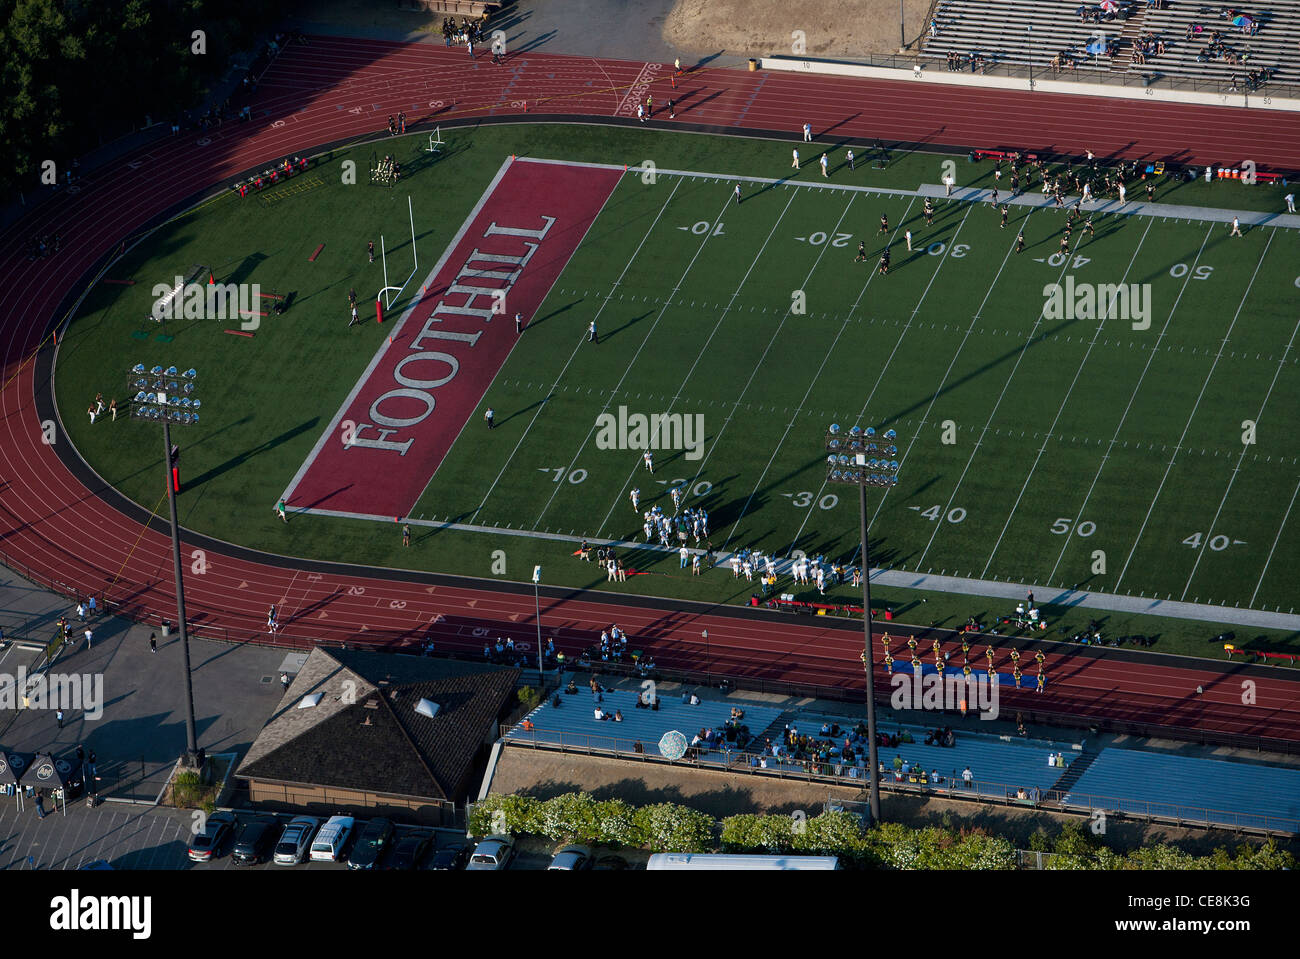 aerial photograph football game Foothill College Los Altos Hills, California - Stock Image